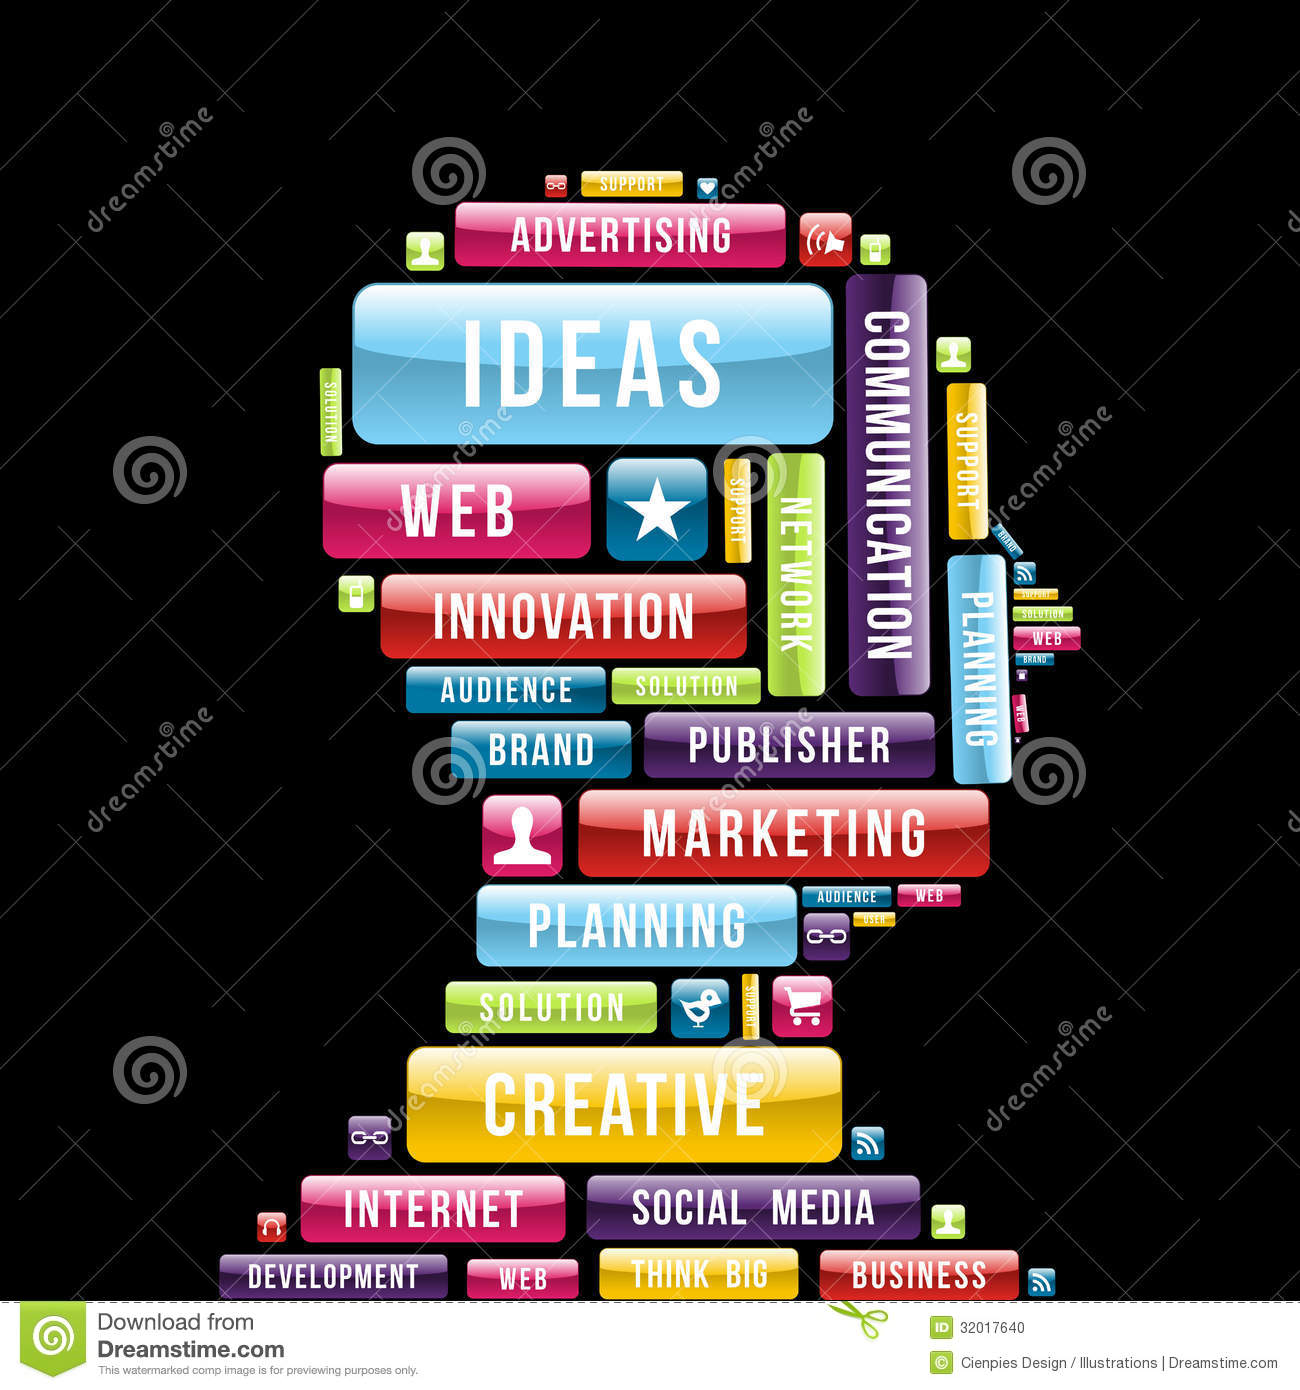 Business Ideas For Technology